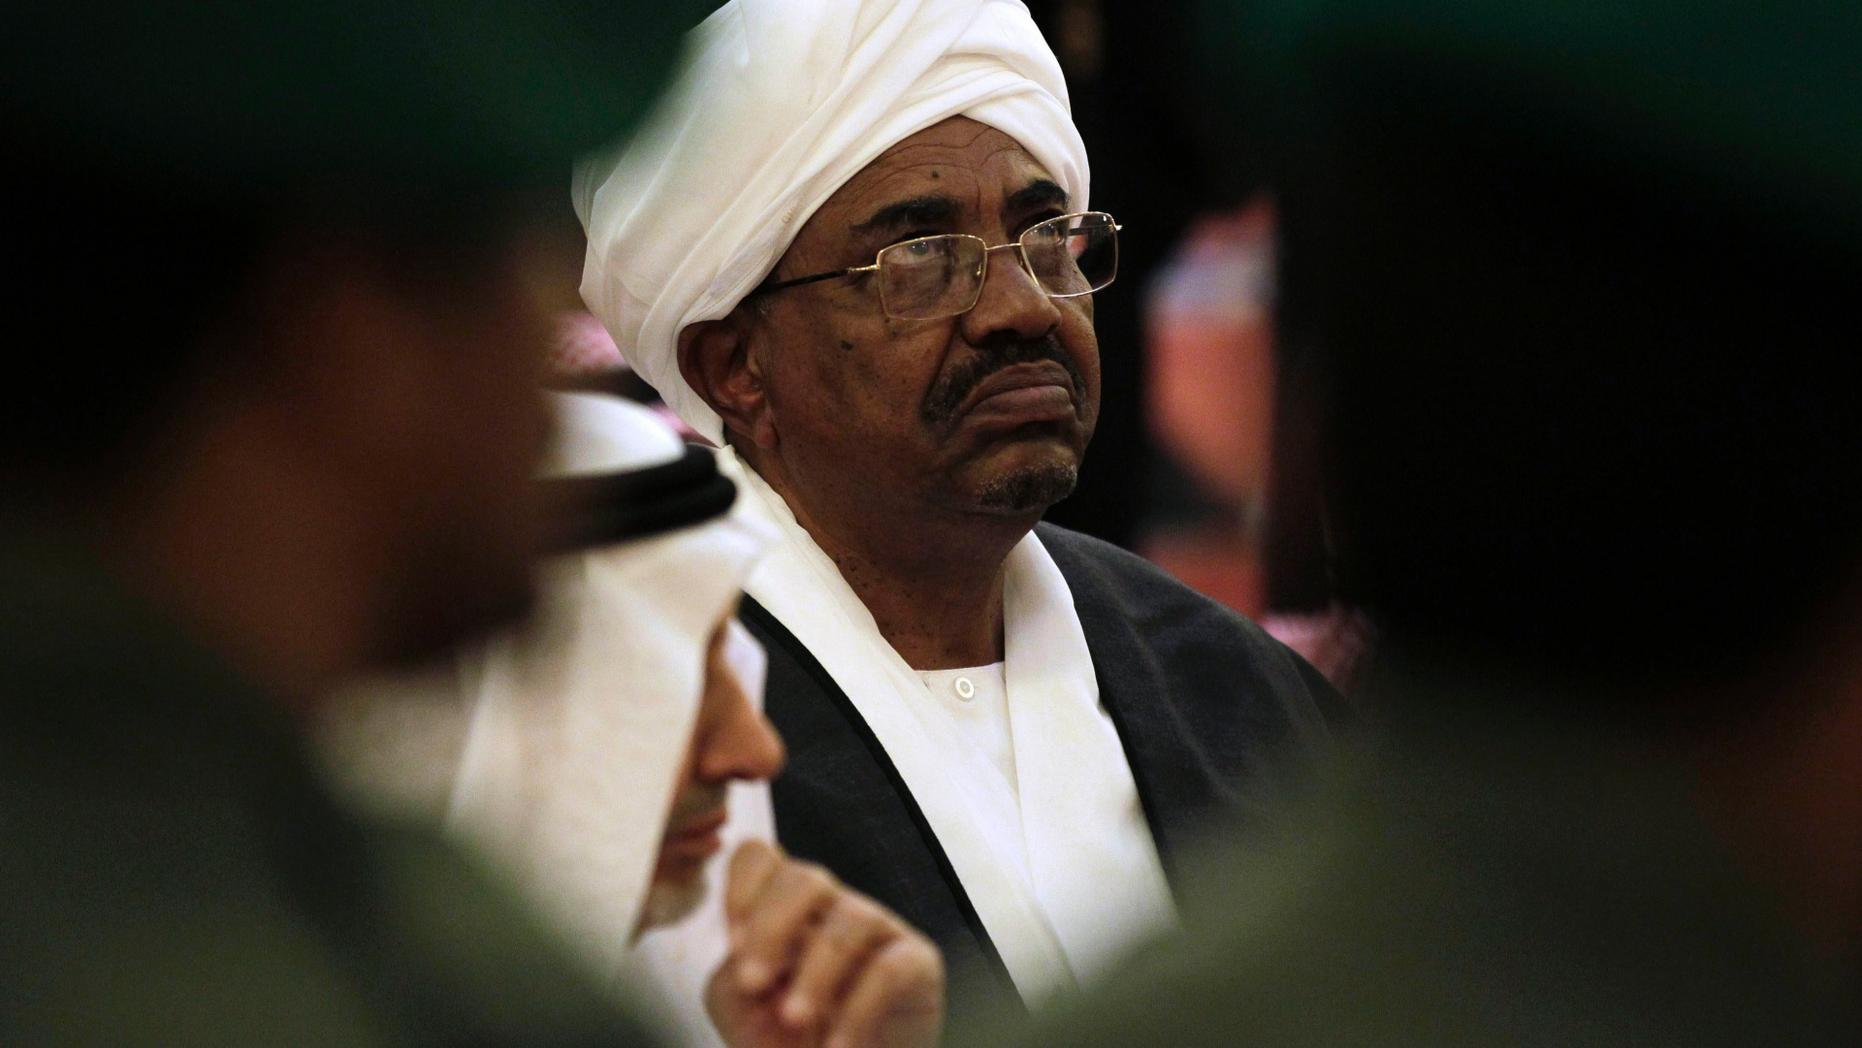 """FILE - In this Oct. 25, 2011 file photo, Sudanese President Omar al-Bashir attends the funeral of Saudi Crown Prince Sultan bin Abdul-Aziz Al Saud, in Riyadh, Saudi Arabia.  In a report issued Tuesday, March 27, 2019, New York-based Human Rights Watch described al-Bashir as a """"fugitive from international justice"""" because he is wanted by the International Criminal Court for charges of genocide linked to the Darfur conflict. The rights group urged Tunisia to either """"bar or arrest"""" Sudanese President Omar al-Bashir if he tries to attend an Arab League summit this weekend. (AP Photo/Hassan Ammar, File)"""